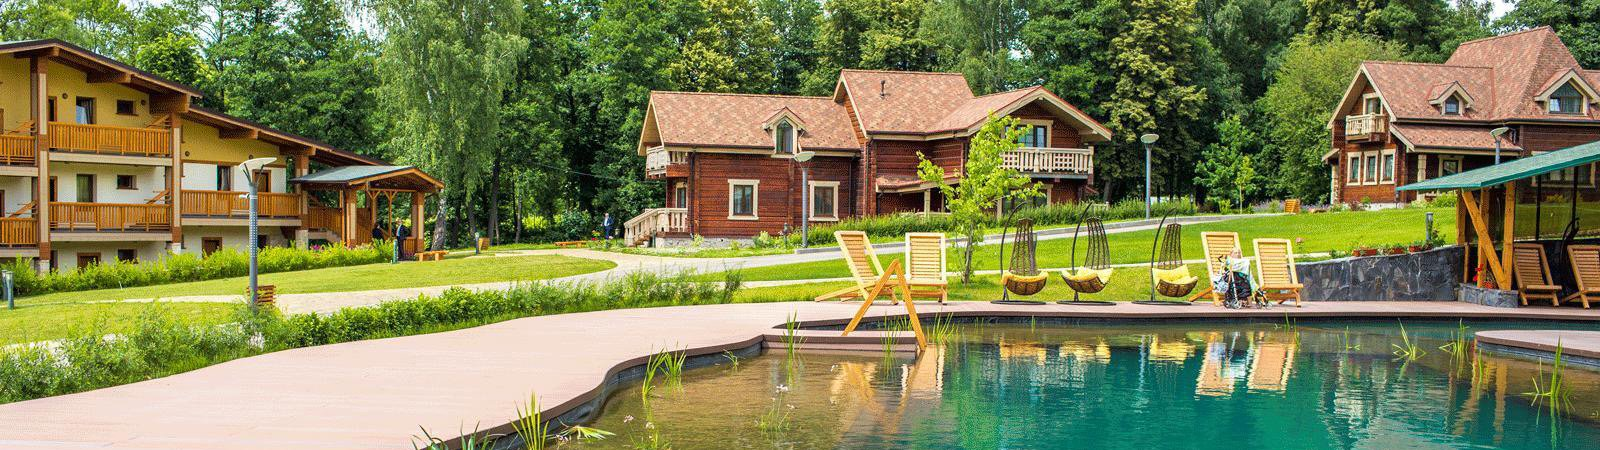 «Welna Eco Spa resort»  (Велна Эко Спа Резорт) отель